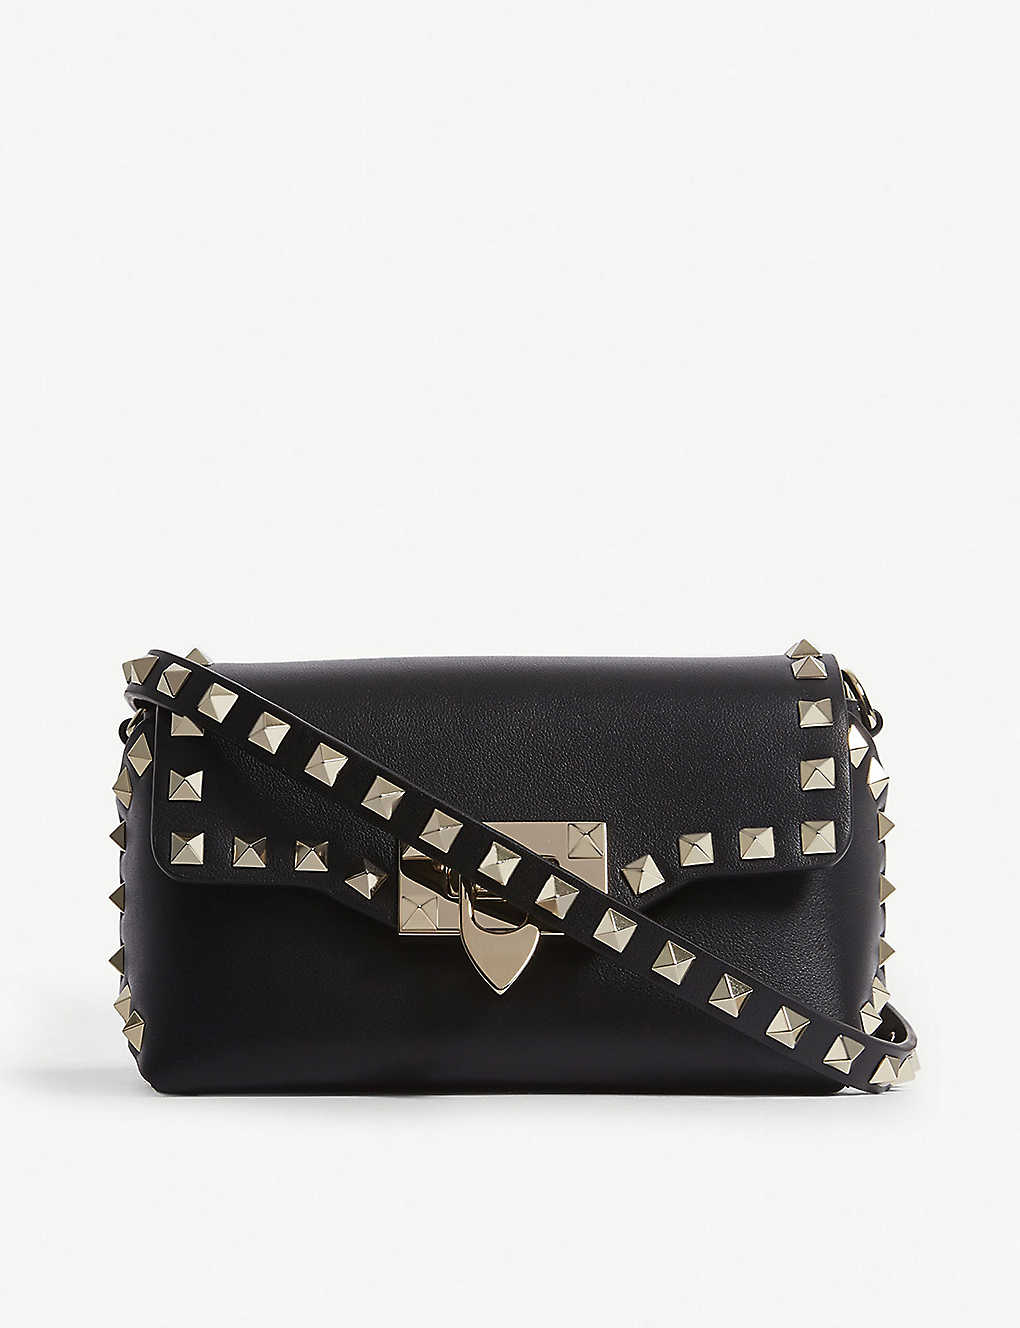 f1b71faf21 VALENTINO - Rockstud leather cross-body bag | Selfridges.com